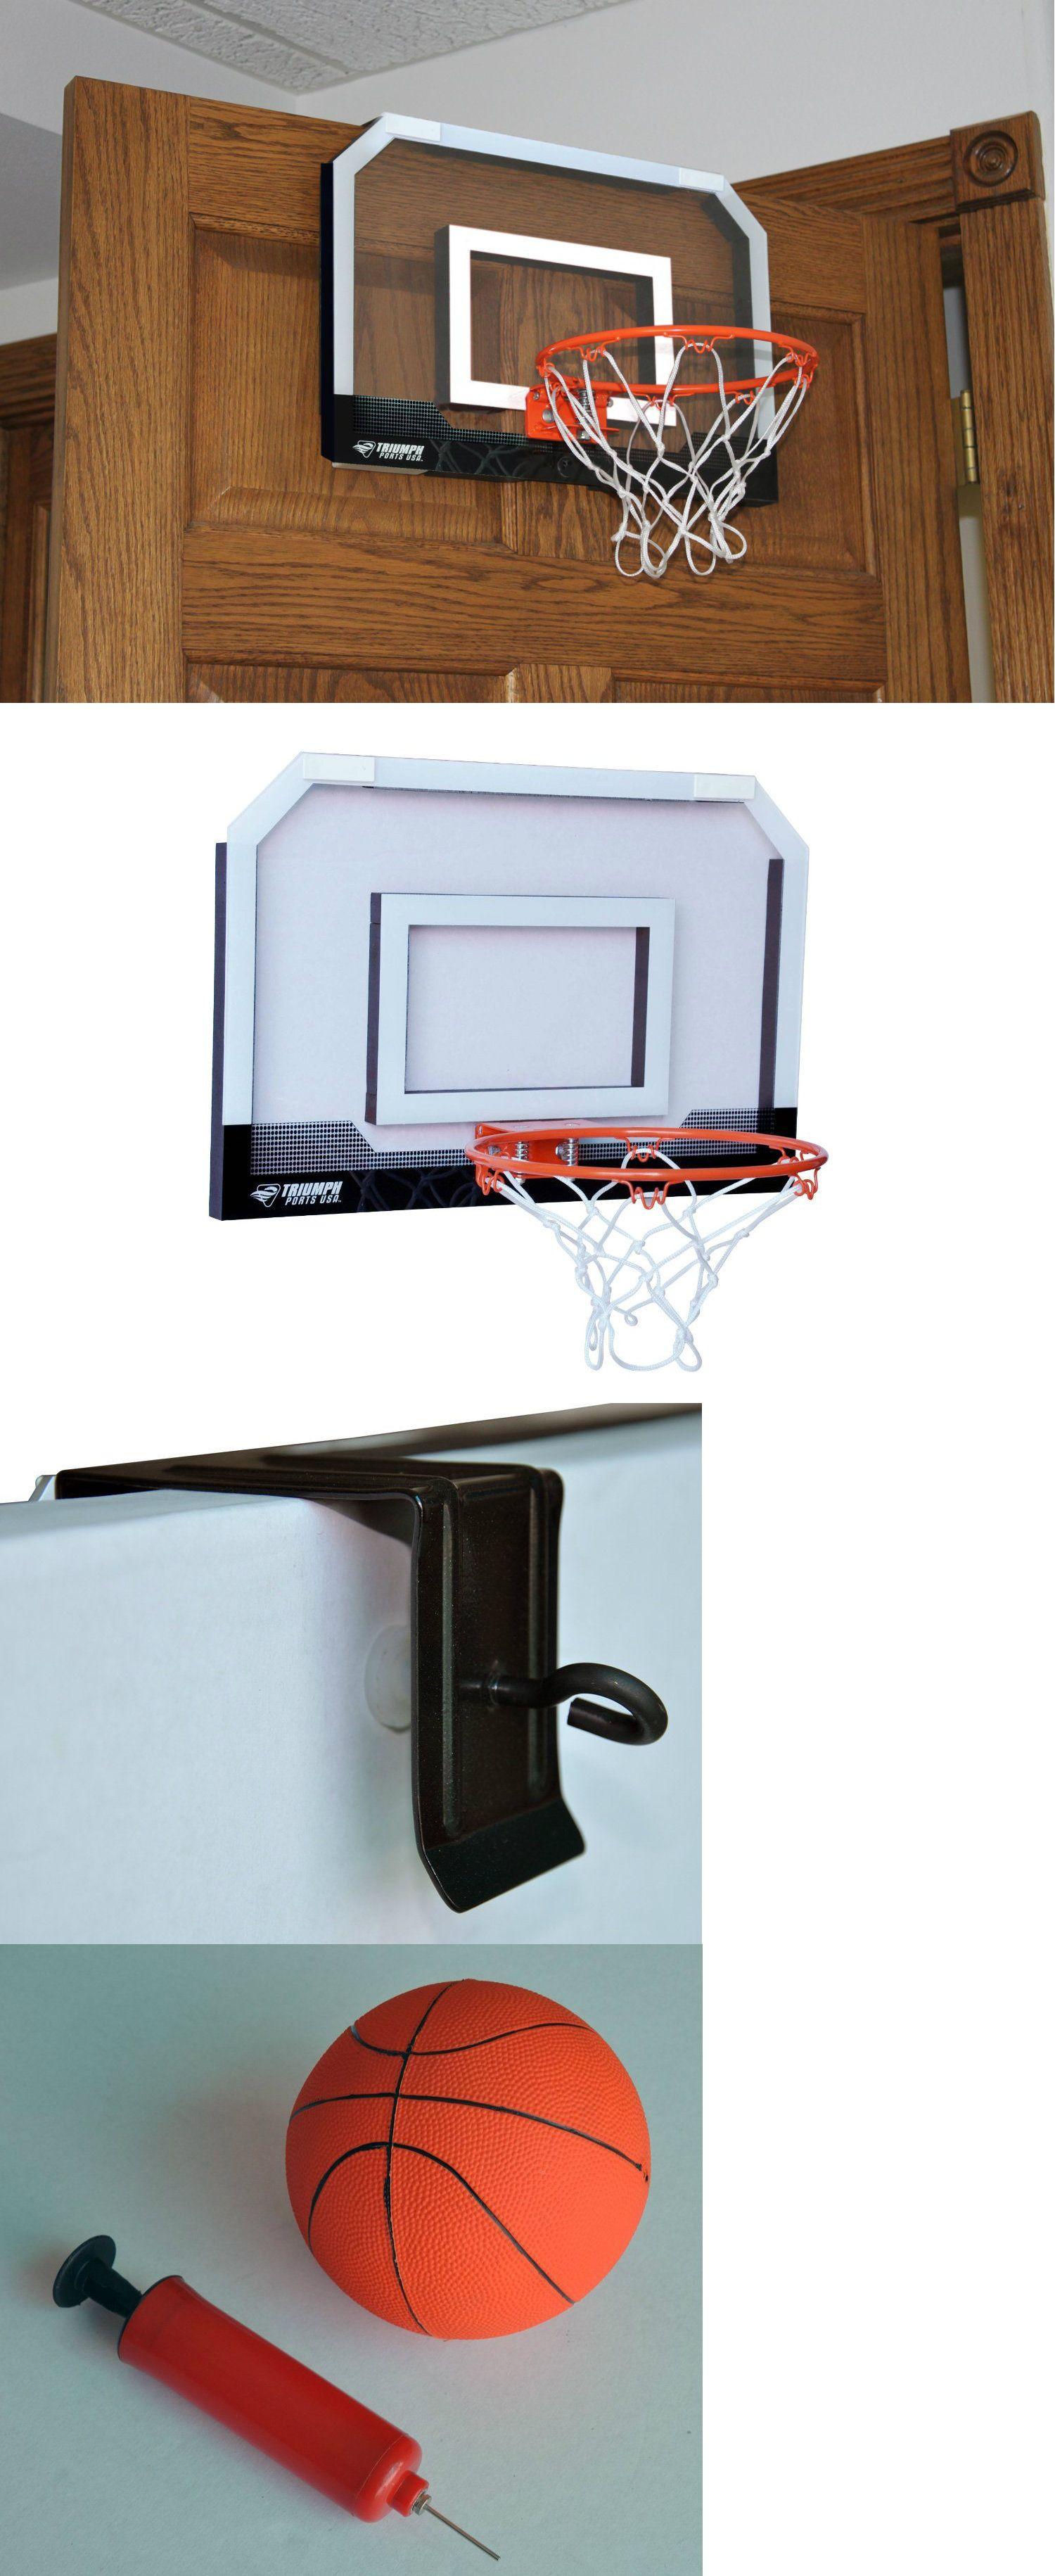 backboard systems 21196 indoor mini basketball hoop net backboard